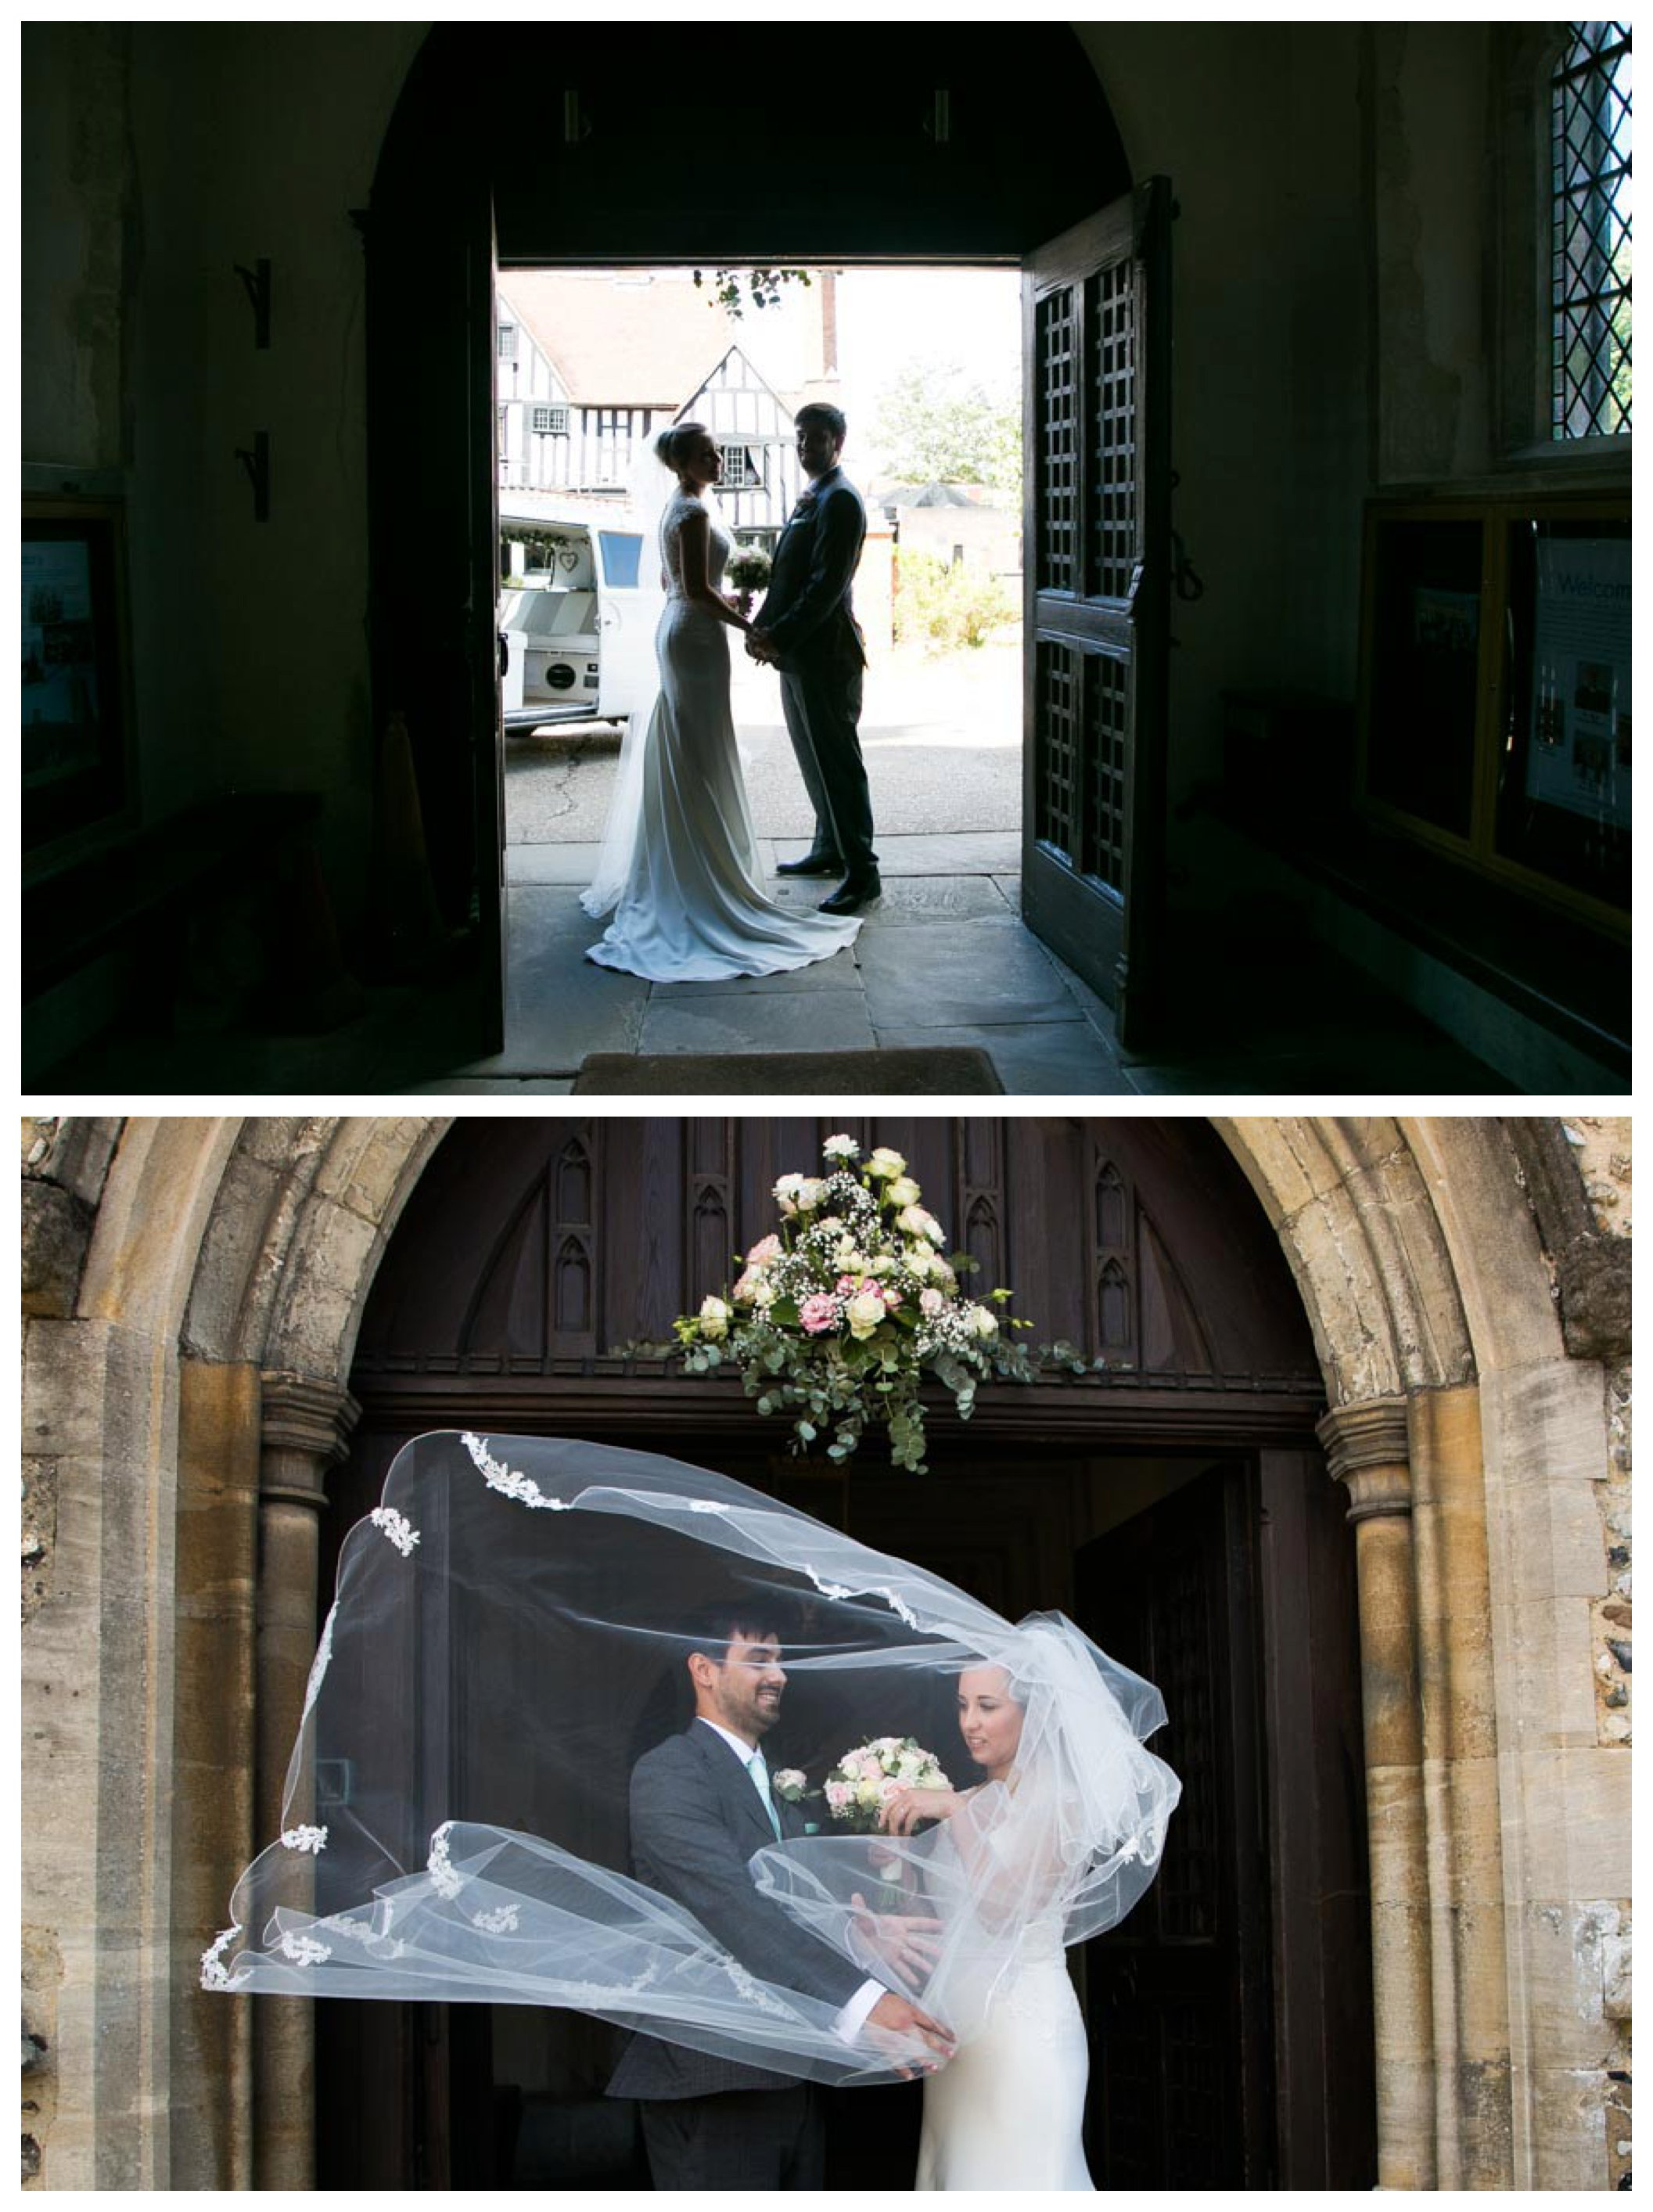 bride and groom in church doorway with light behind them, brides veil blowing infront of groom